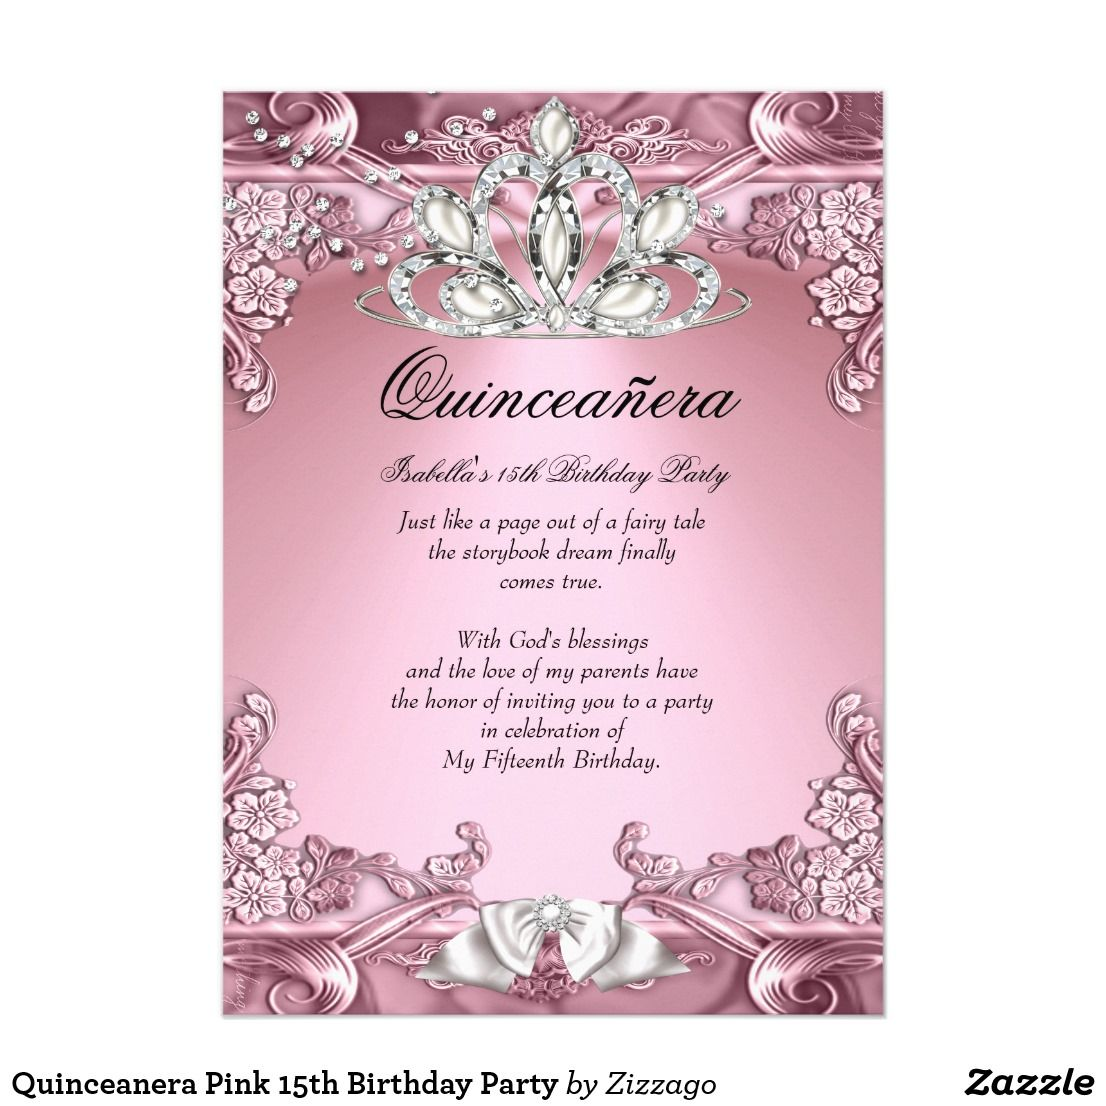 Quinceanera pink 15th birthday party card 15th birthday party quinceanera pink 15th birthday party card stopboris Choice Image